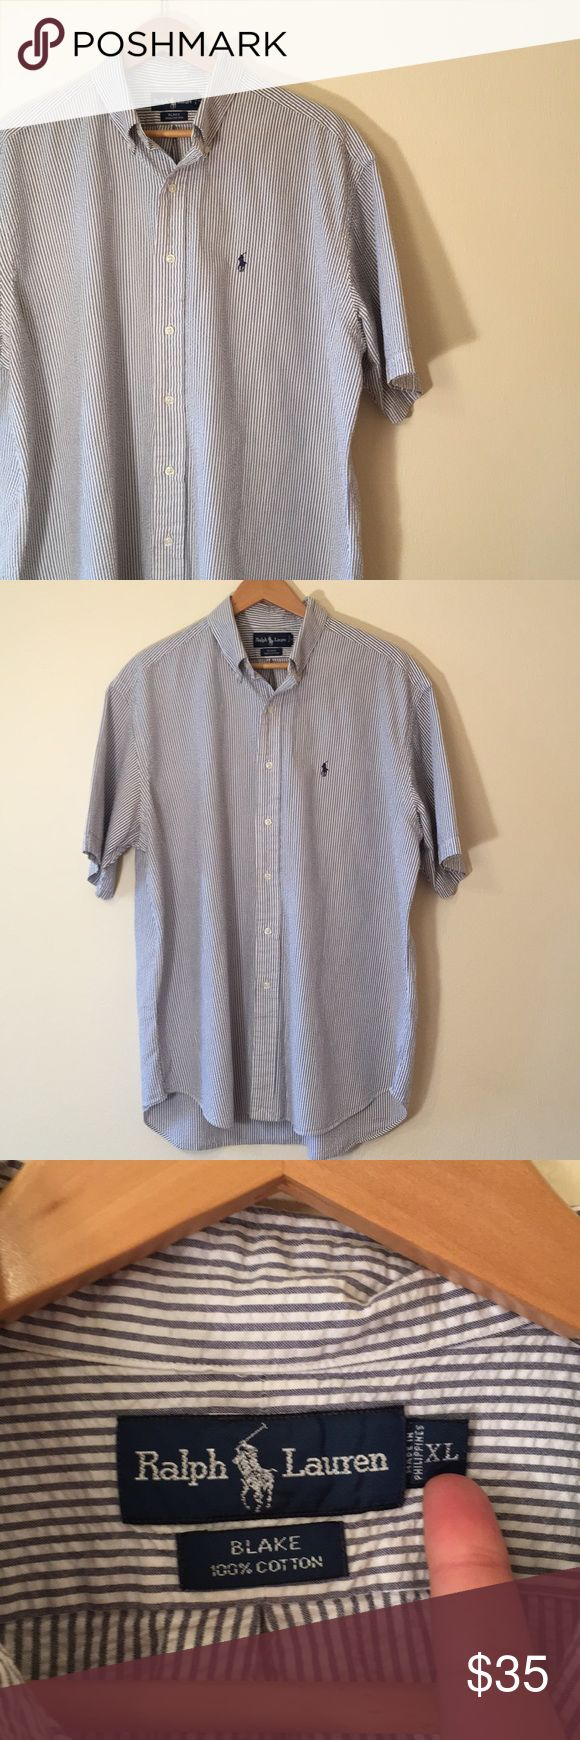 Ralph Lauren polo button down shirt Good condition, Ralph Lauren Blue Label polo shirt from the Blake Collection, shirt is a textured cotton fabric, 100% cotton, embroidered polo logo Ralph Lauren Shirts Casual Button Down Shirts